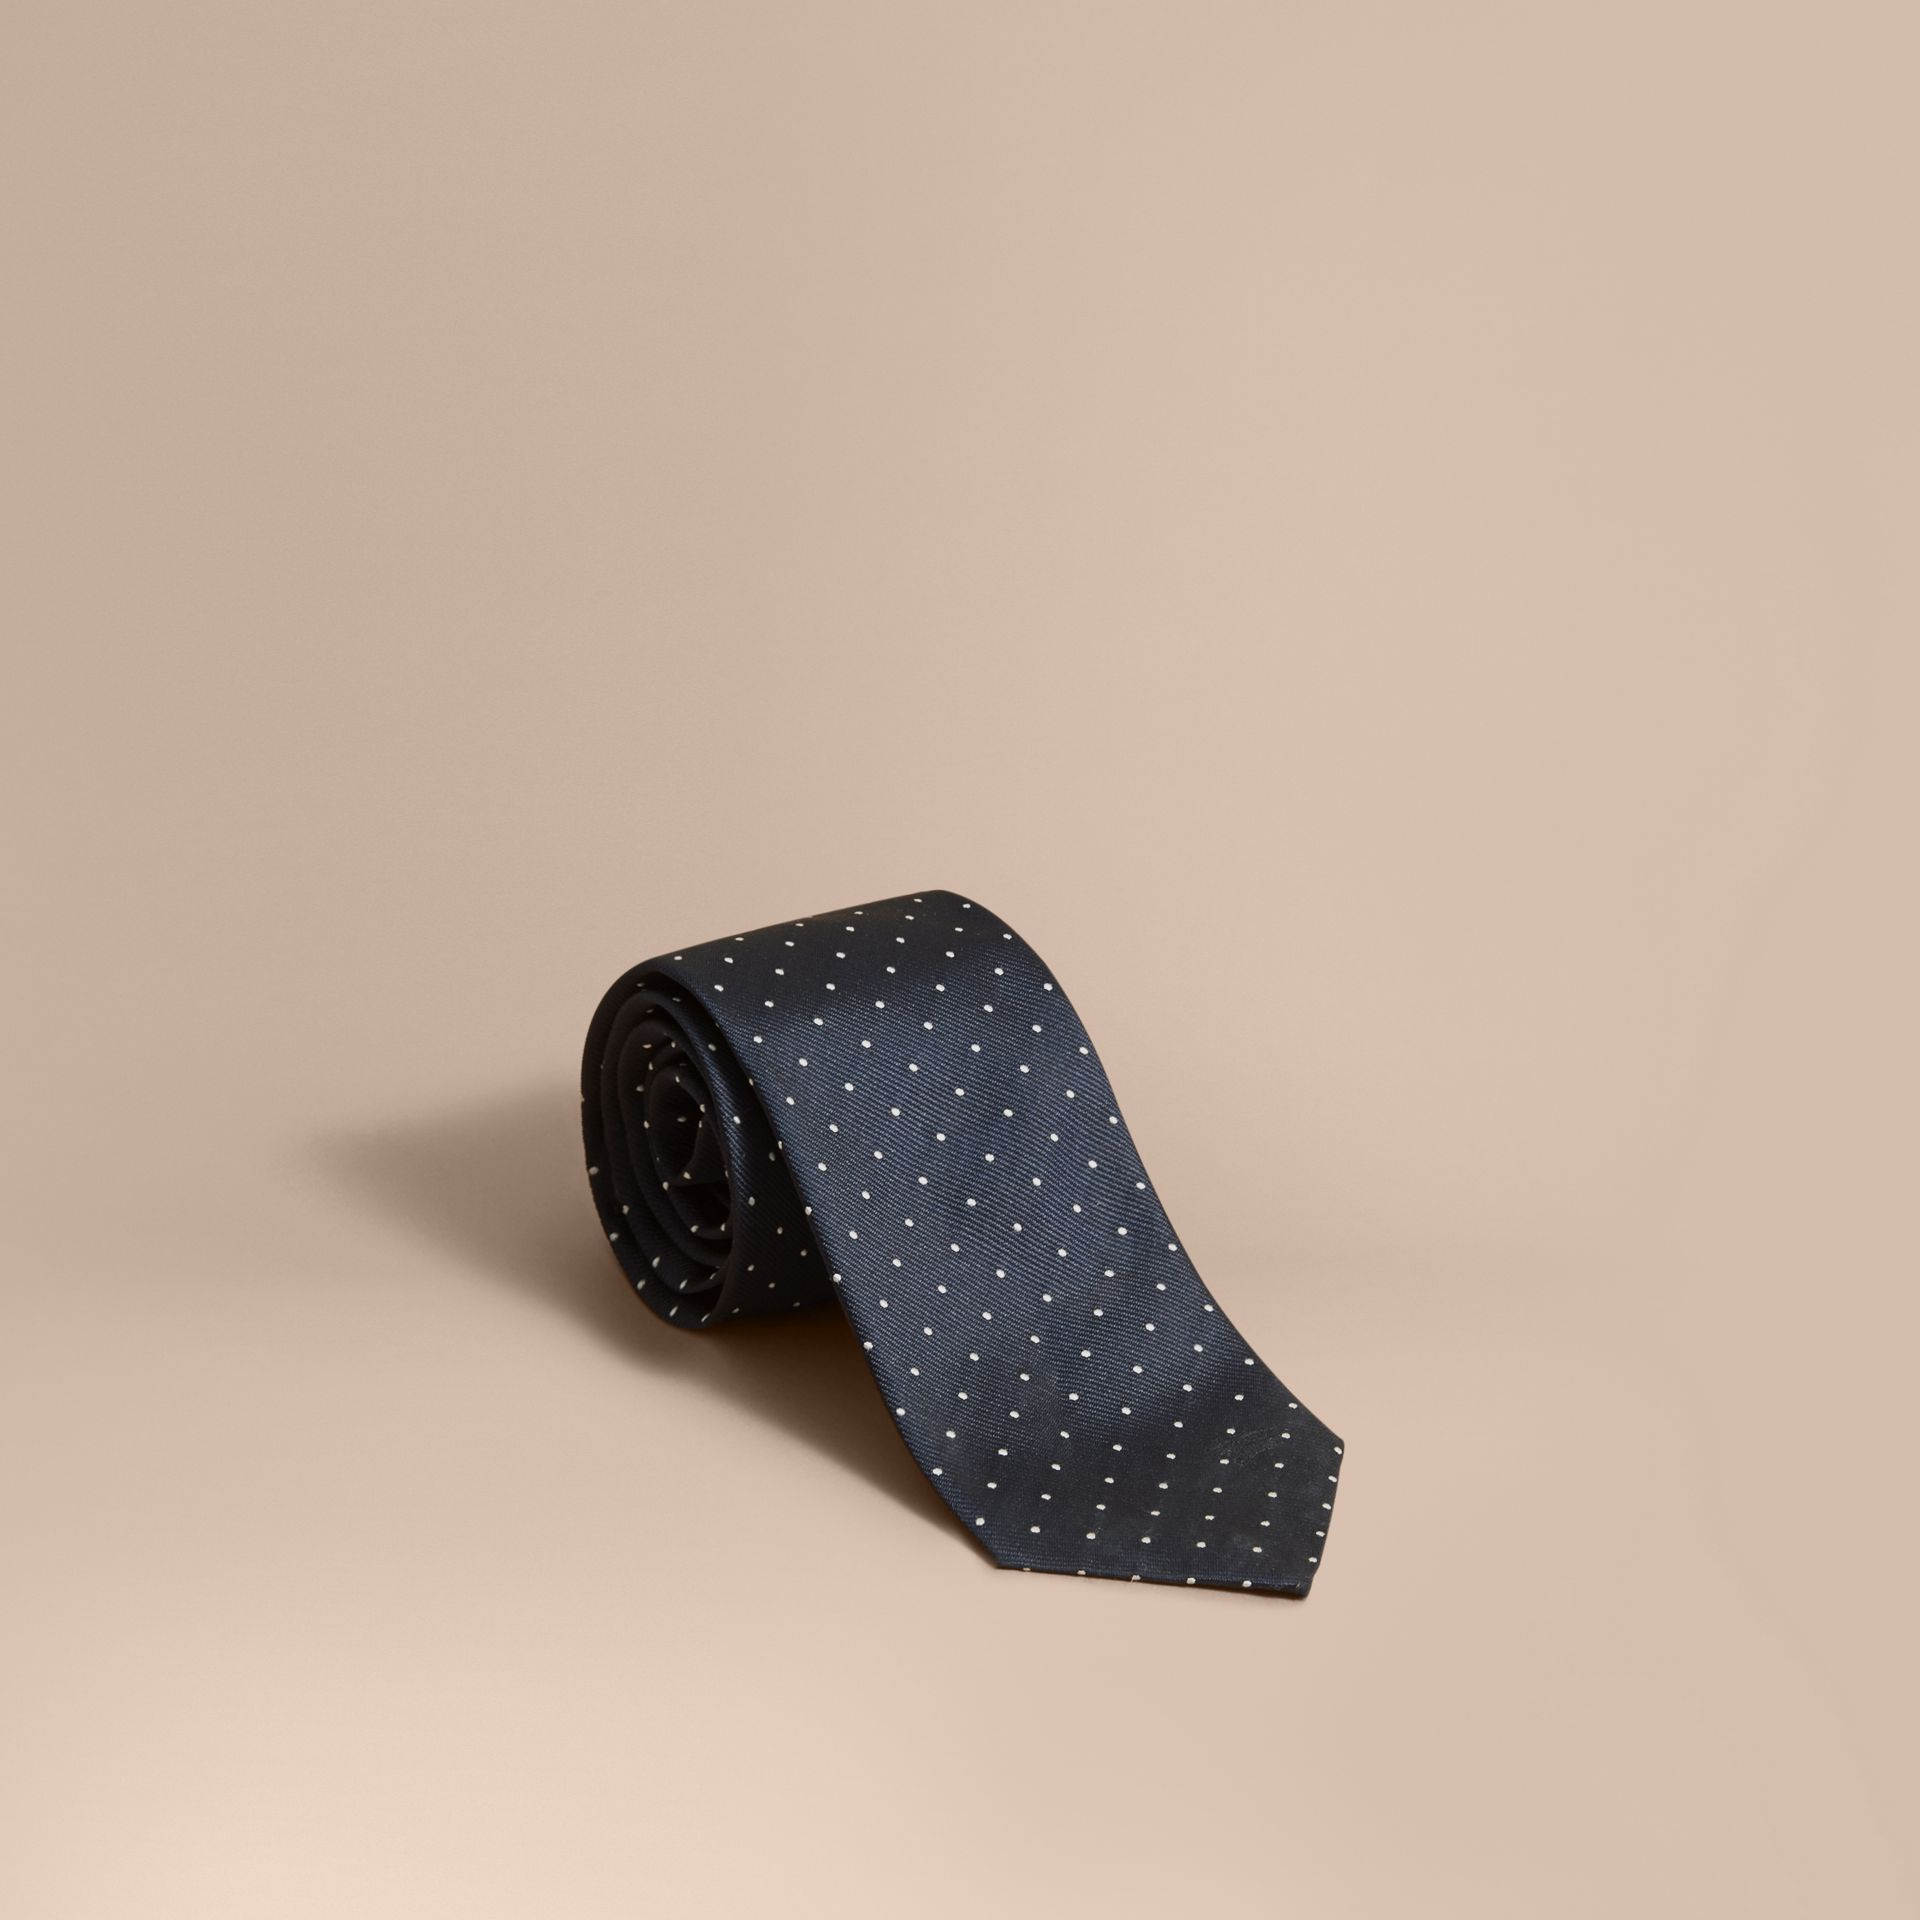 Modern Cut Polka-dot Silk Tie in Navy - Men | Burberry - gallery image 1